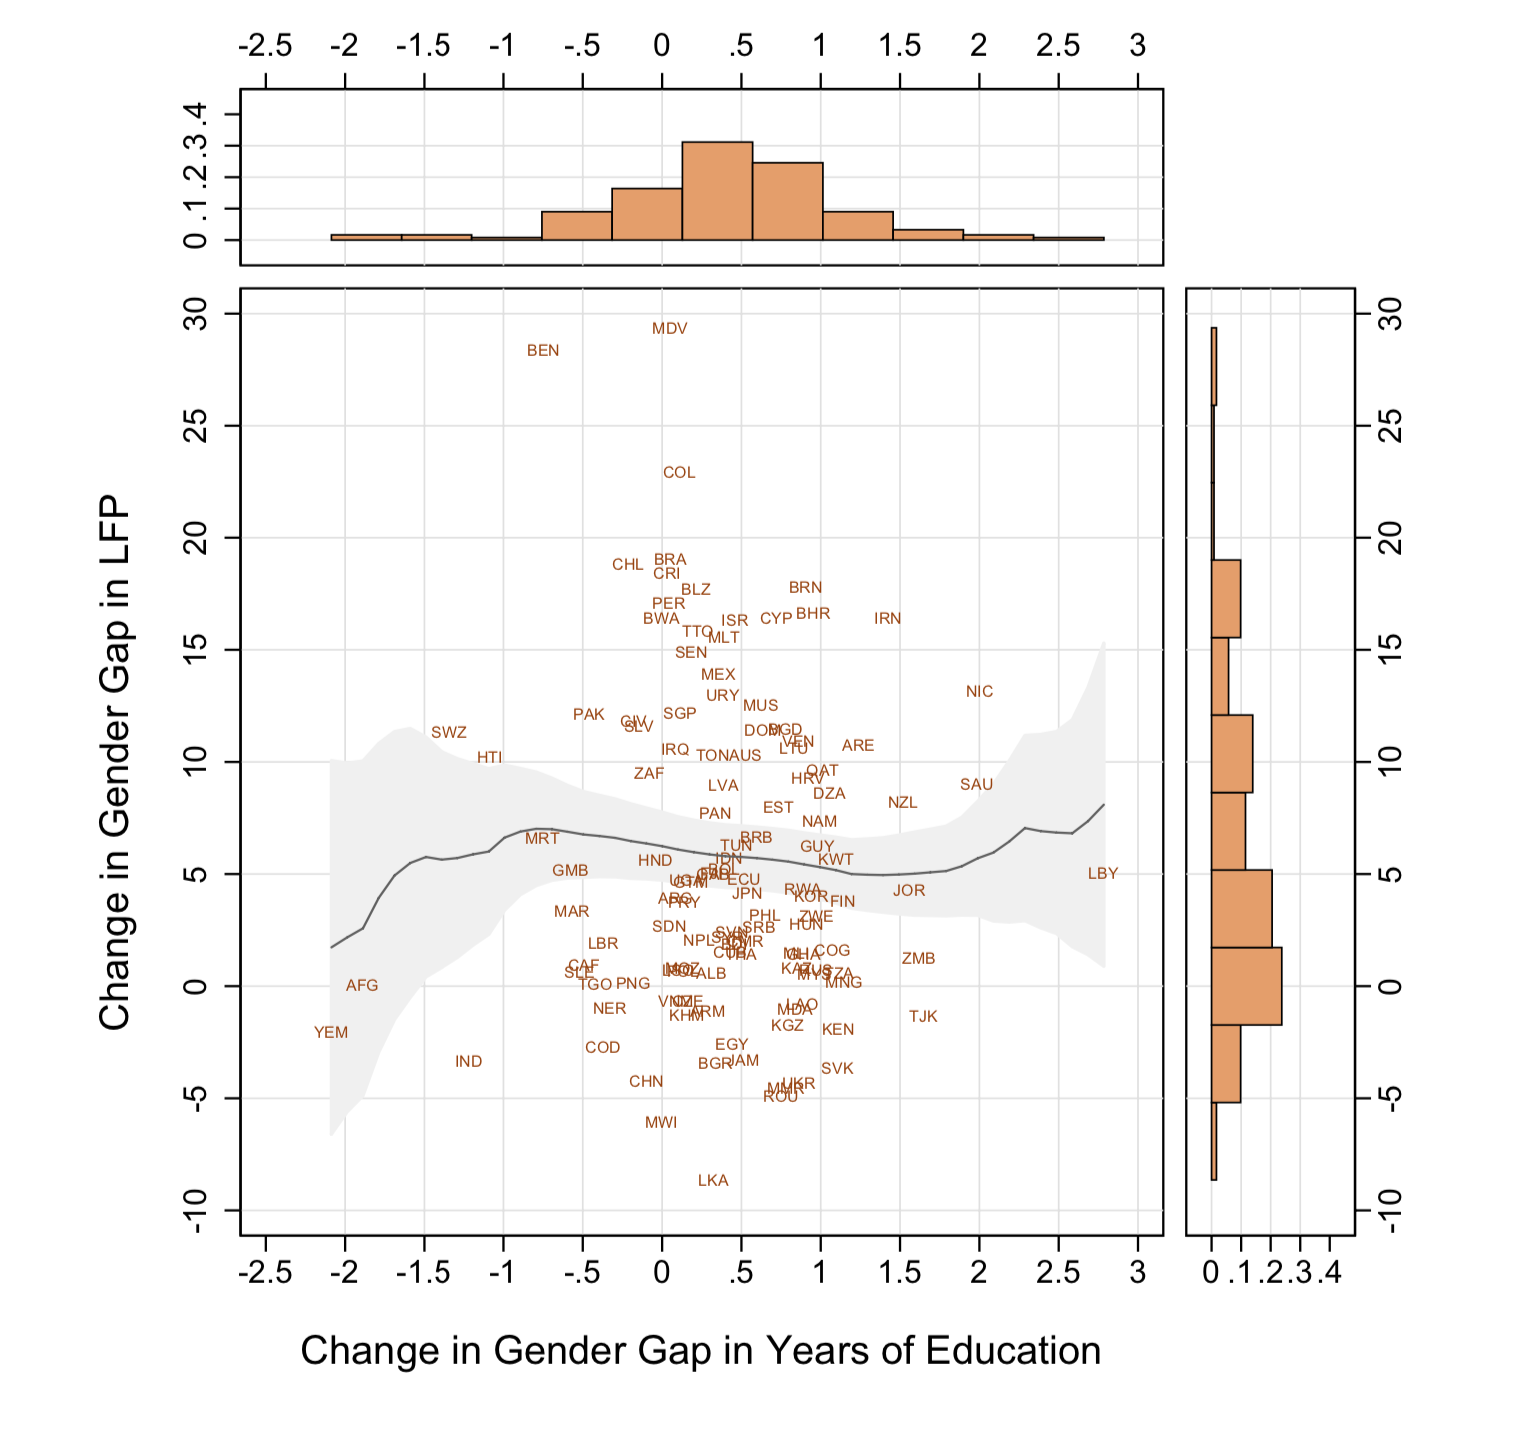 Chart showing that even in countries that have closed gender gaps, women's economic equality may or may not follow; there is no clear association